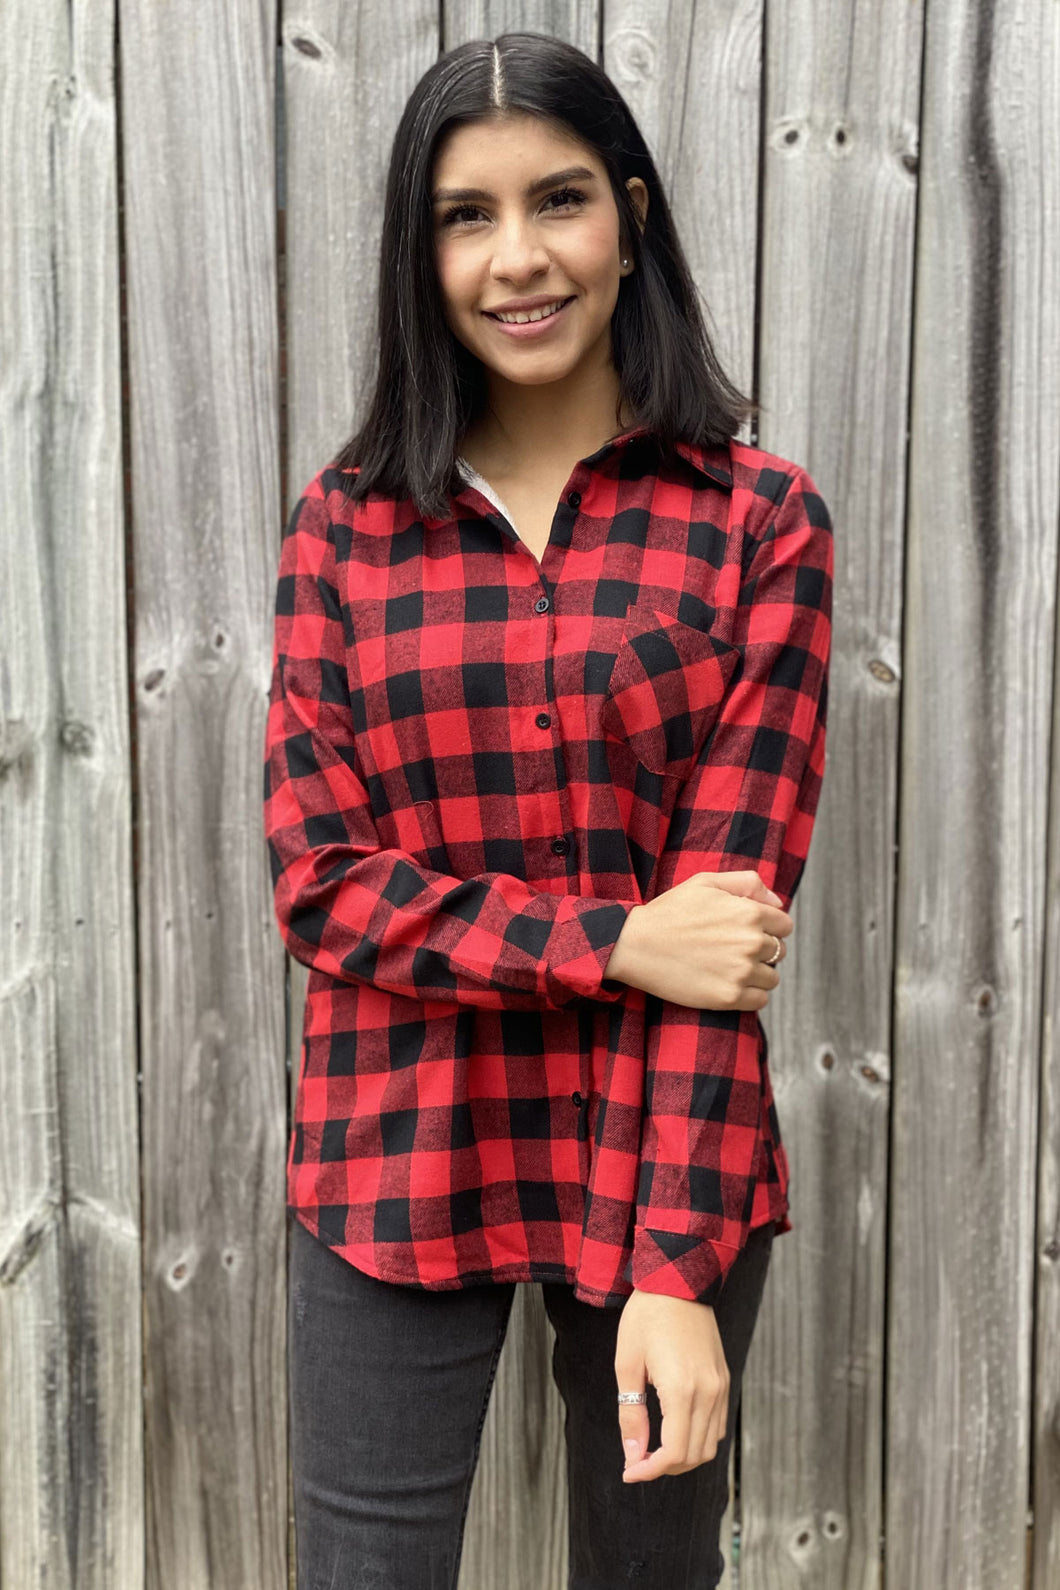 Our Home Sweet Home Flannel is your classic Buffalo Plaid Flannel with a twist. She has a red and black checkered plaid pattern. She features one front pocket and is Sherpa lined through the chest and back making her extra warm for the Winter. You can wear her by herself buttoned up or open with a tee or tank underneath. She is available in our Missy and Curvy Collections.